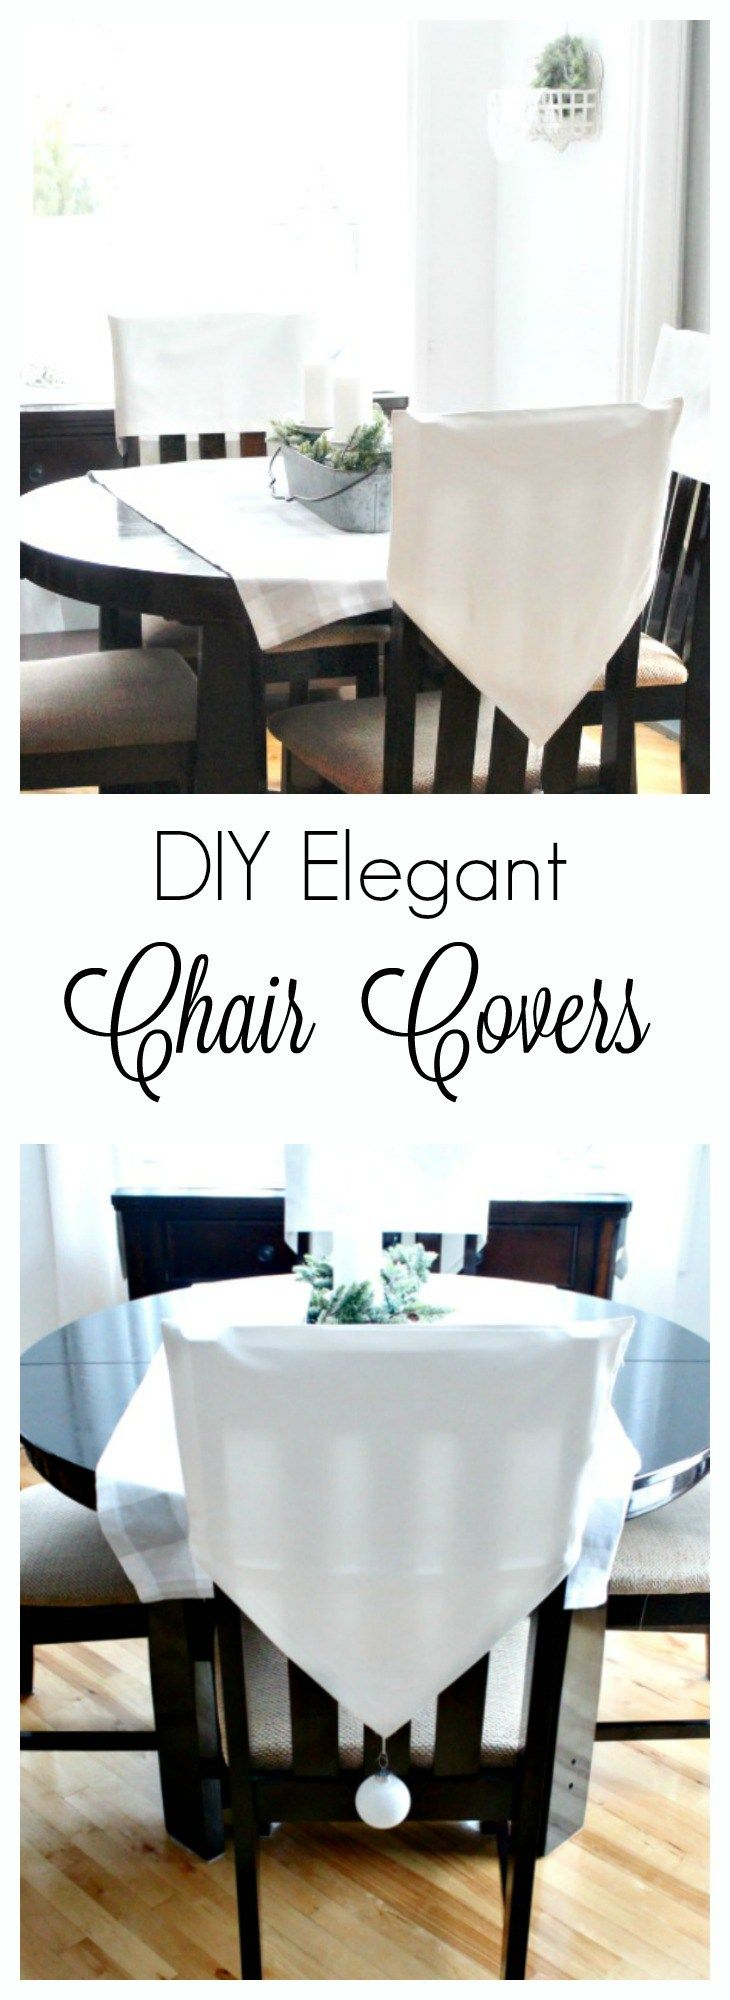 Diy Chair Back Covers Perfect For Dressing Up Kitchen Chairs Chair Back Covers Diy Chair Covers Christmas Chair Covers